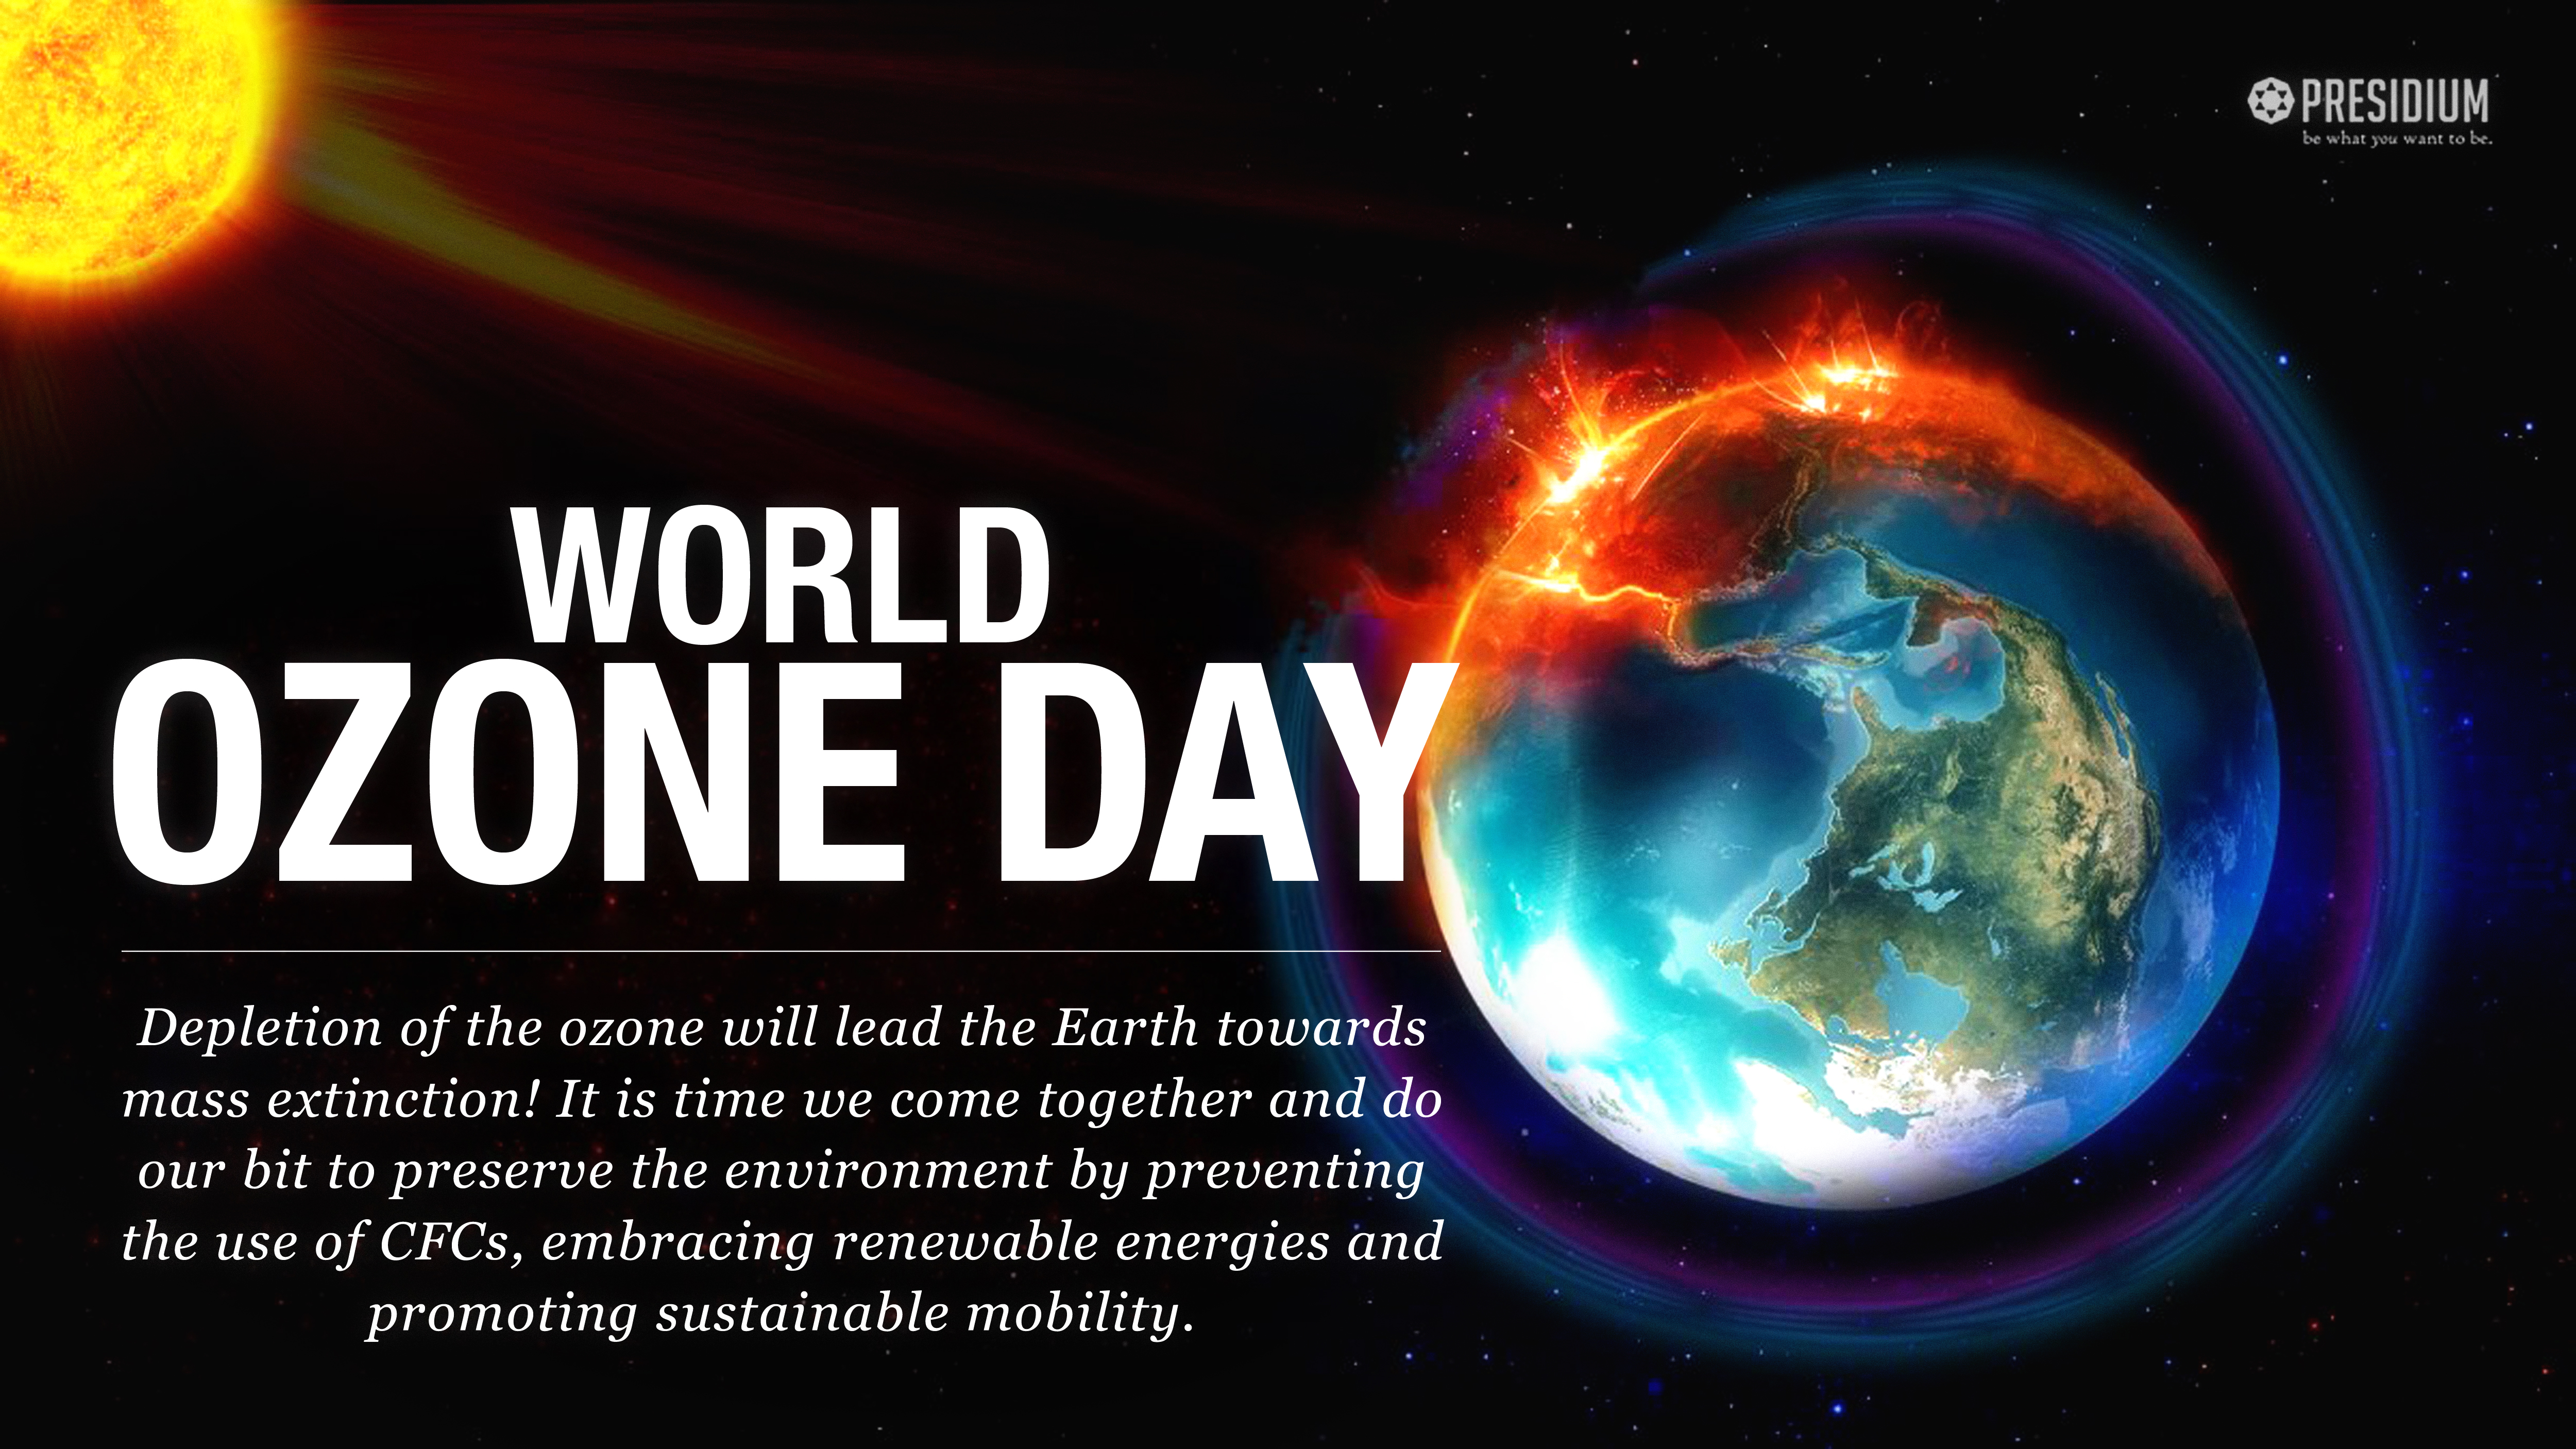 WORLD OZONE DAY: KEEP OZONE FROM BECOMING A NO ZONE!